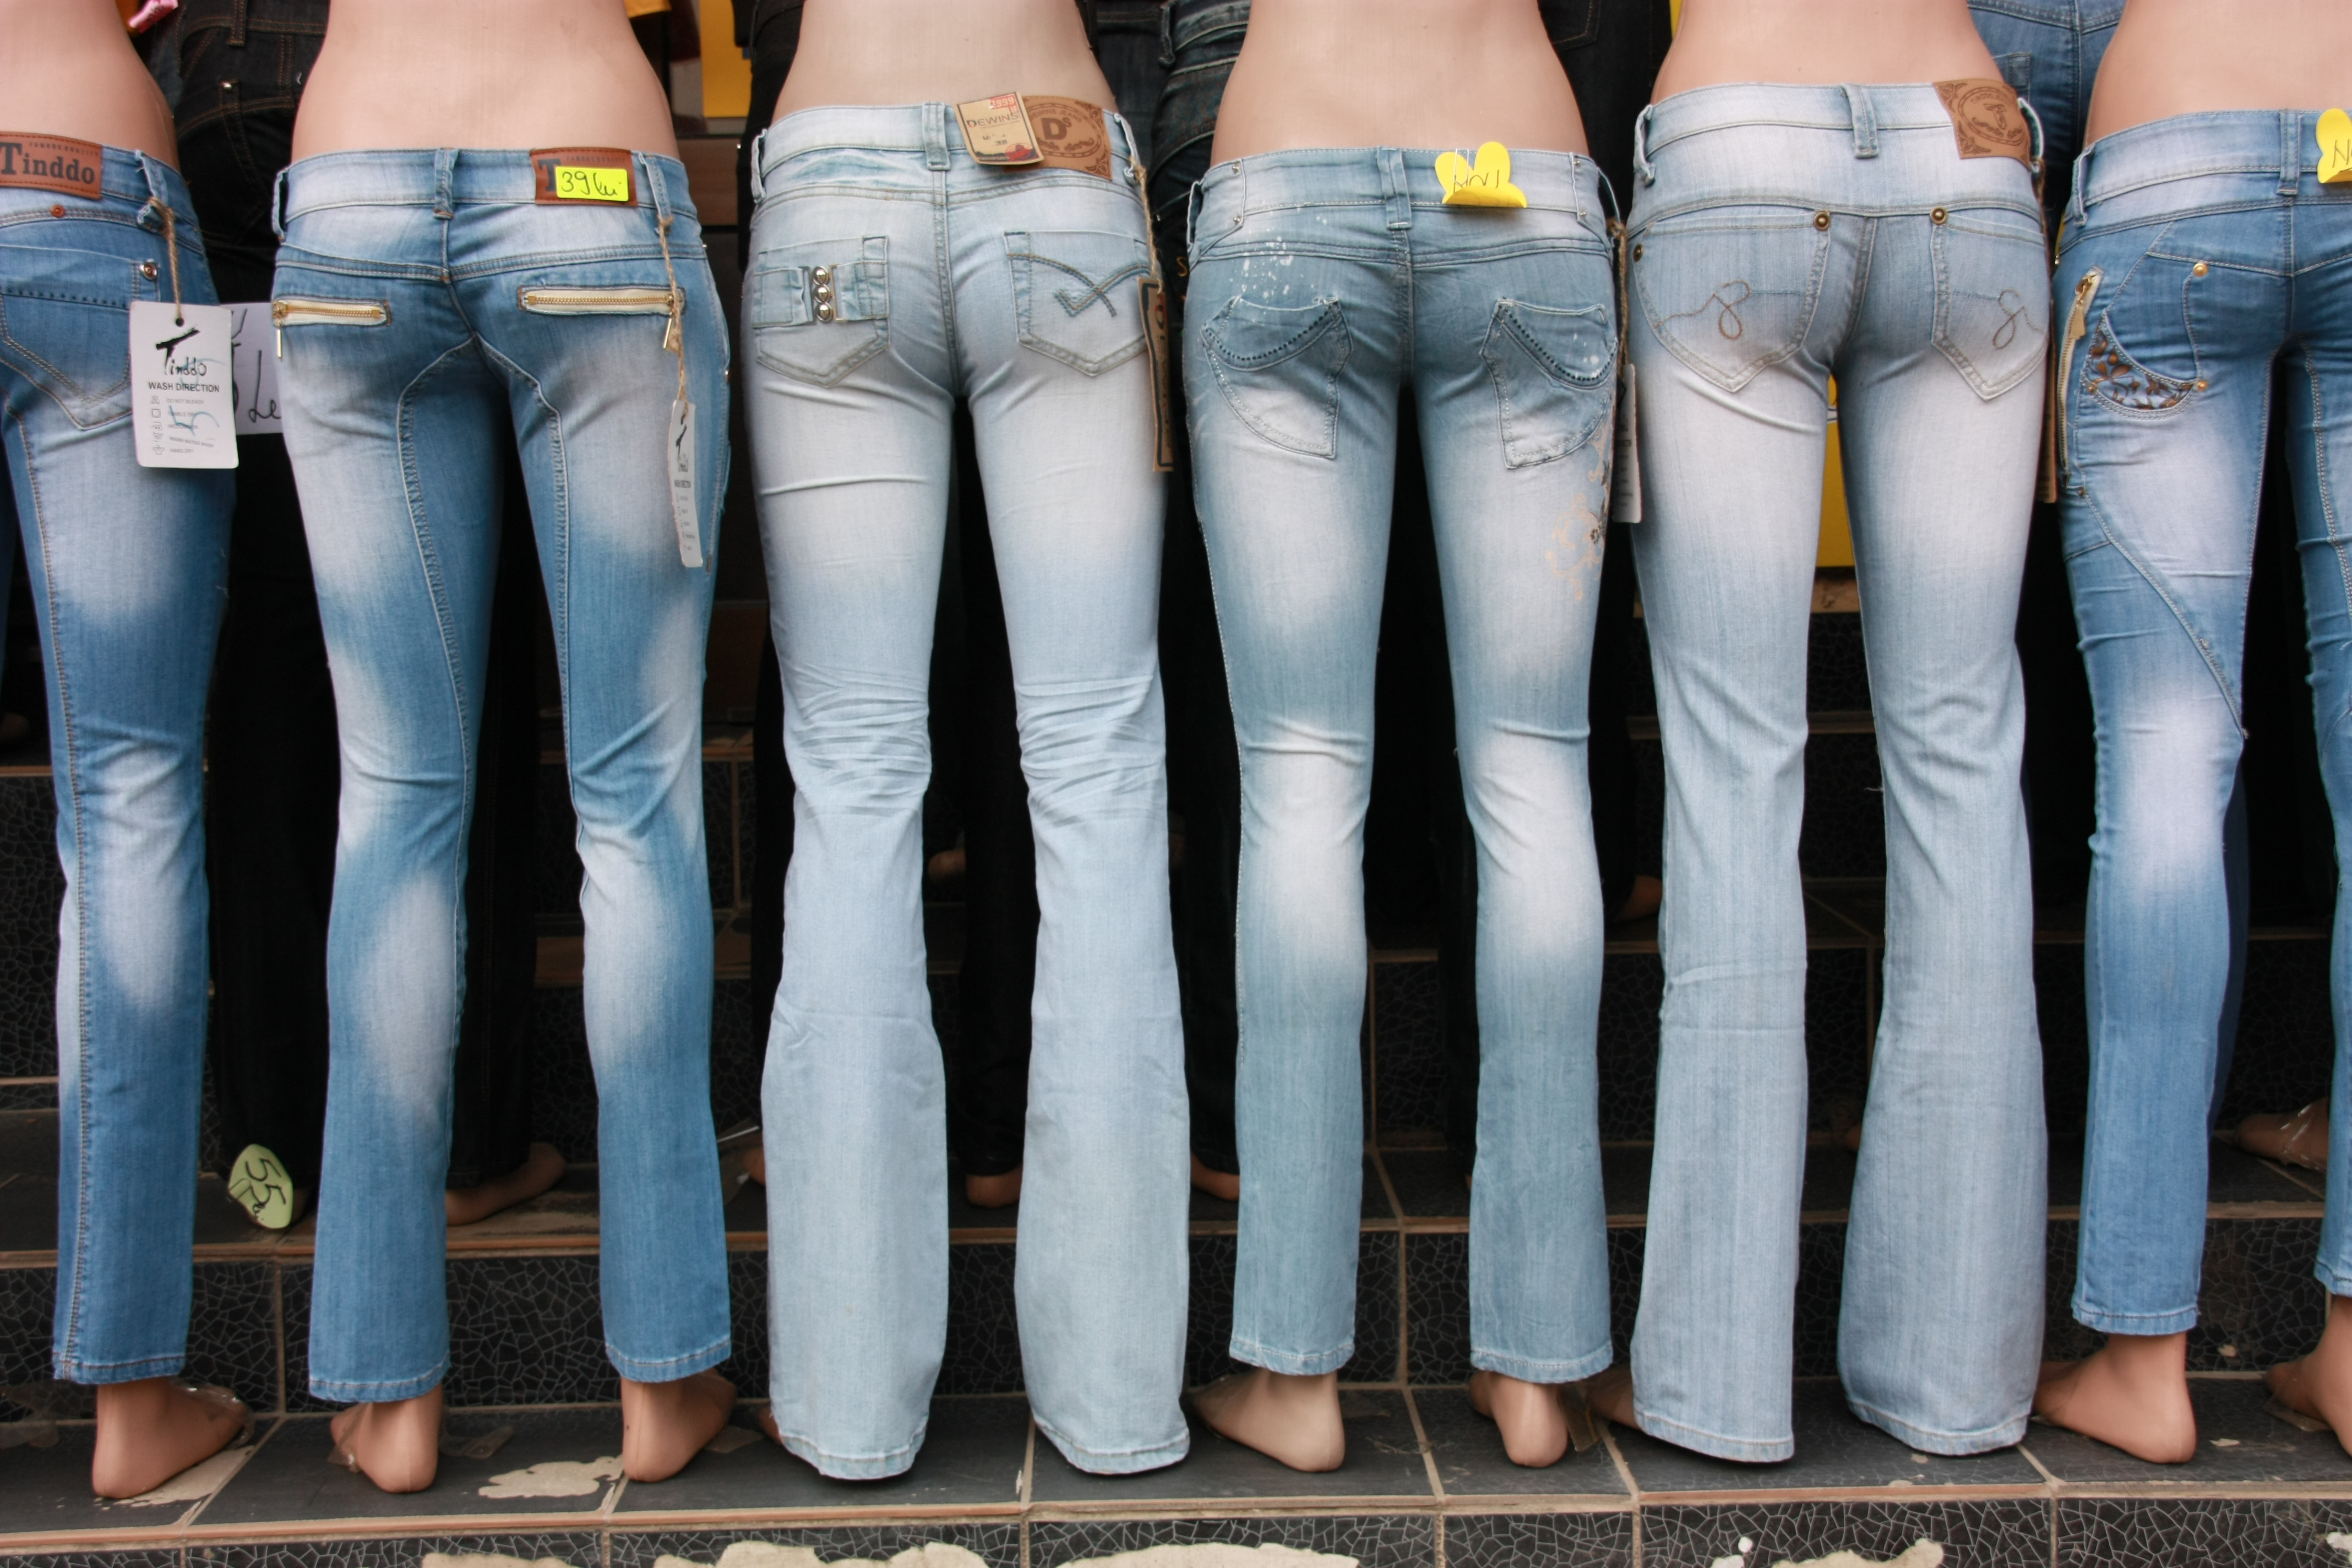 Mannequin_with_jeans